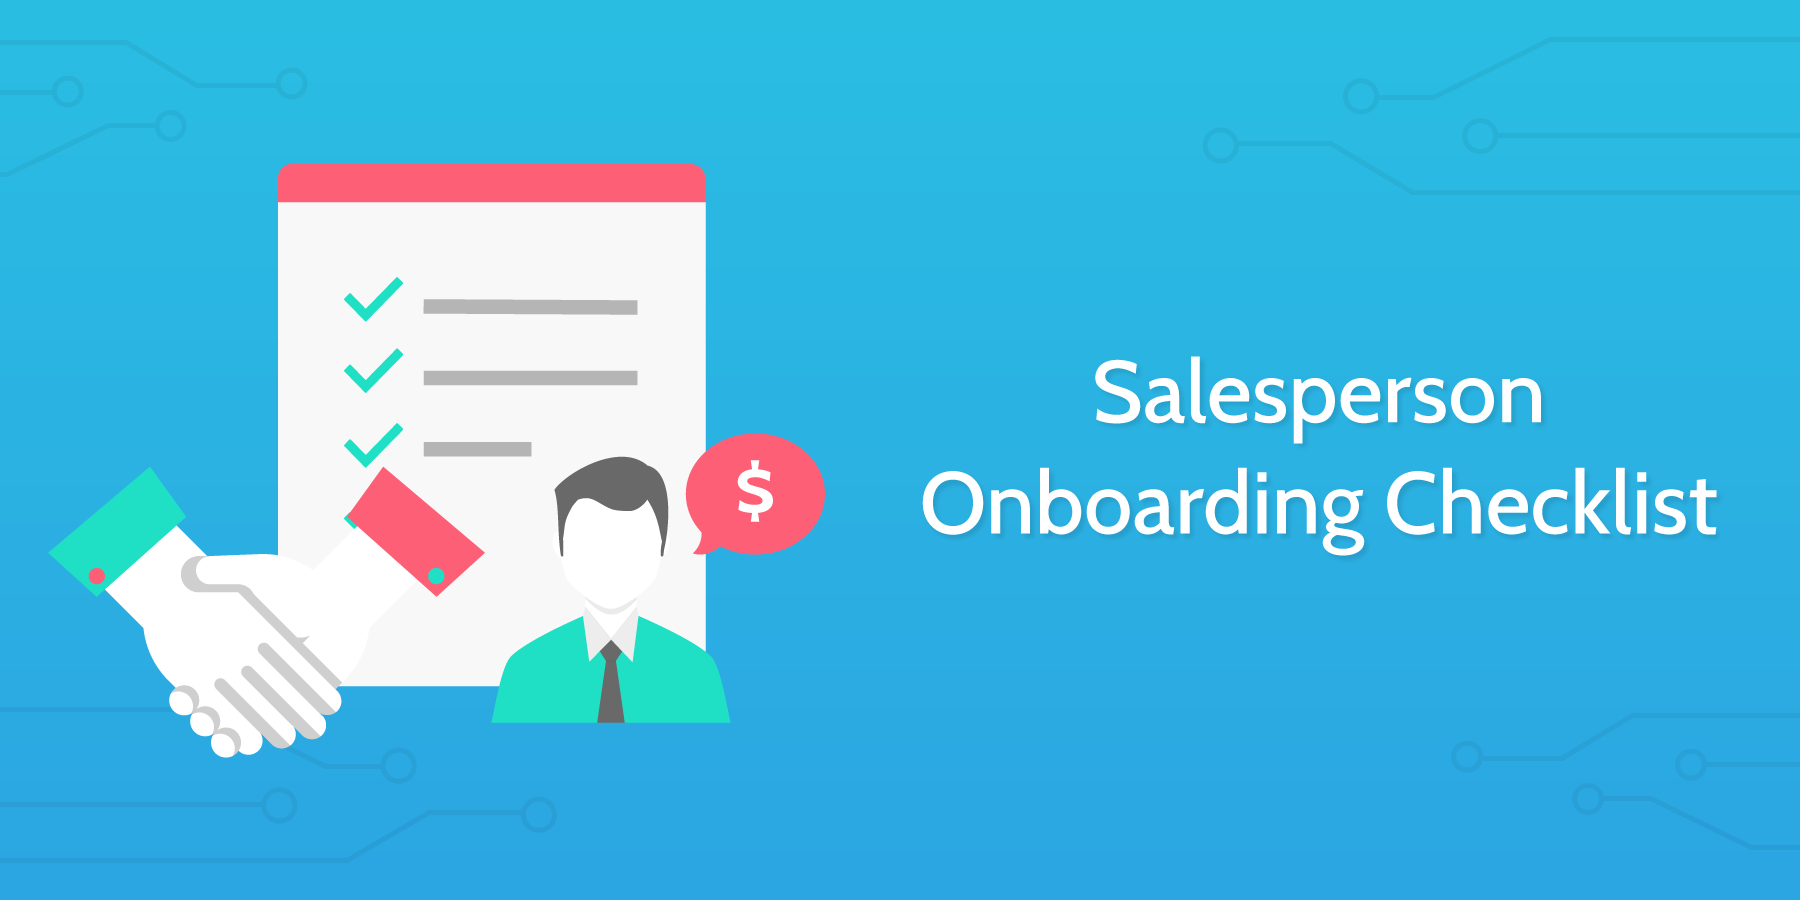 salesperson onboarding checklist for startups